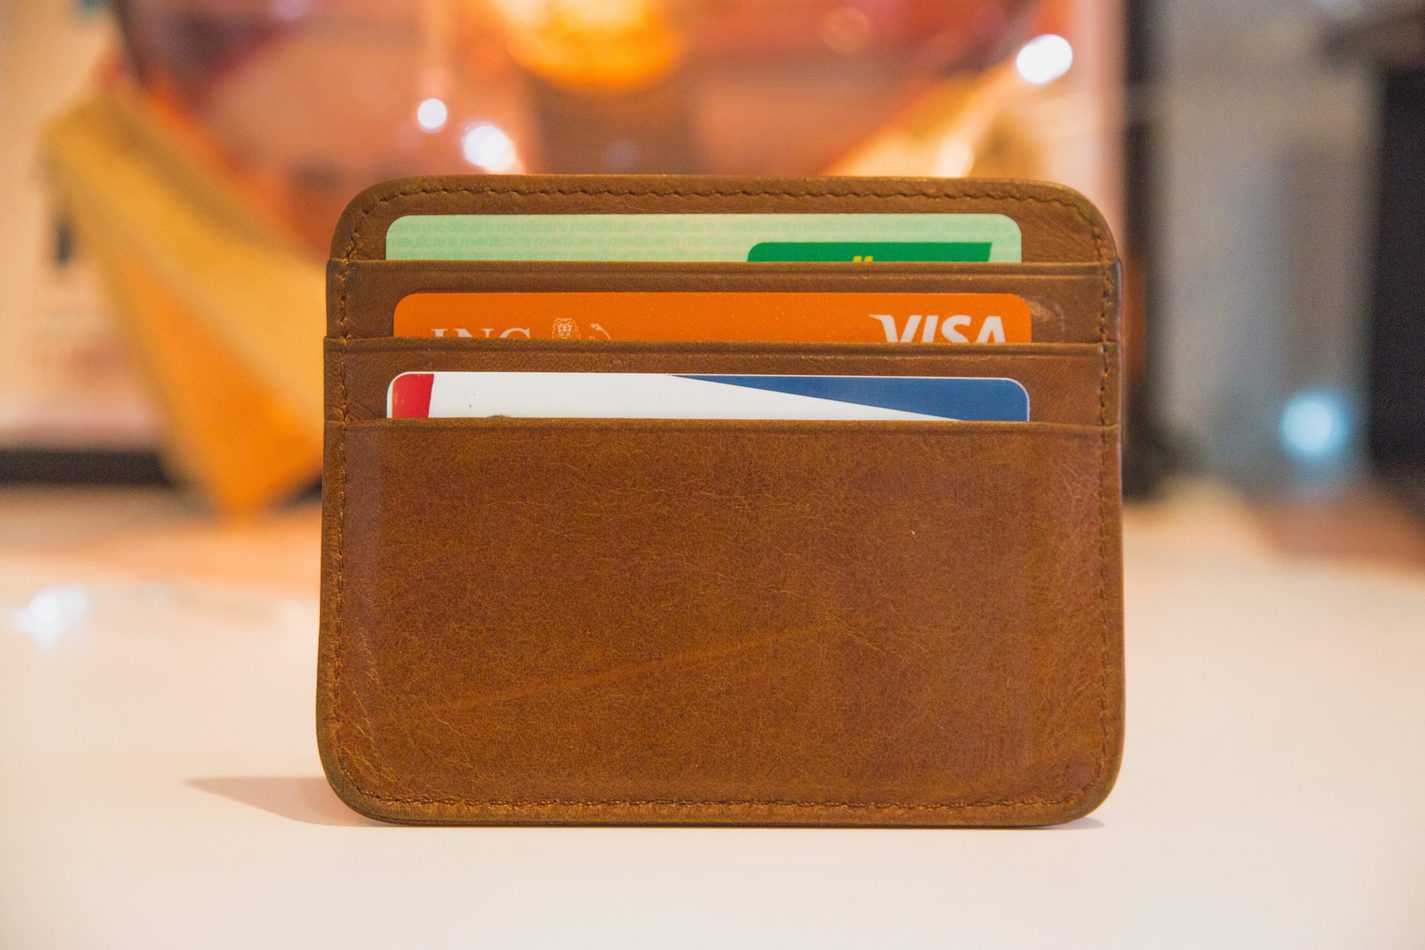 Small card holder with credit cards